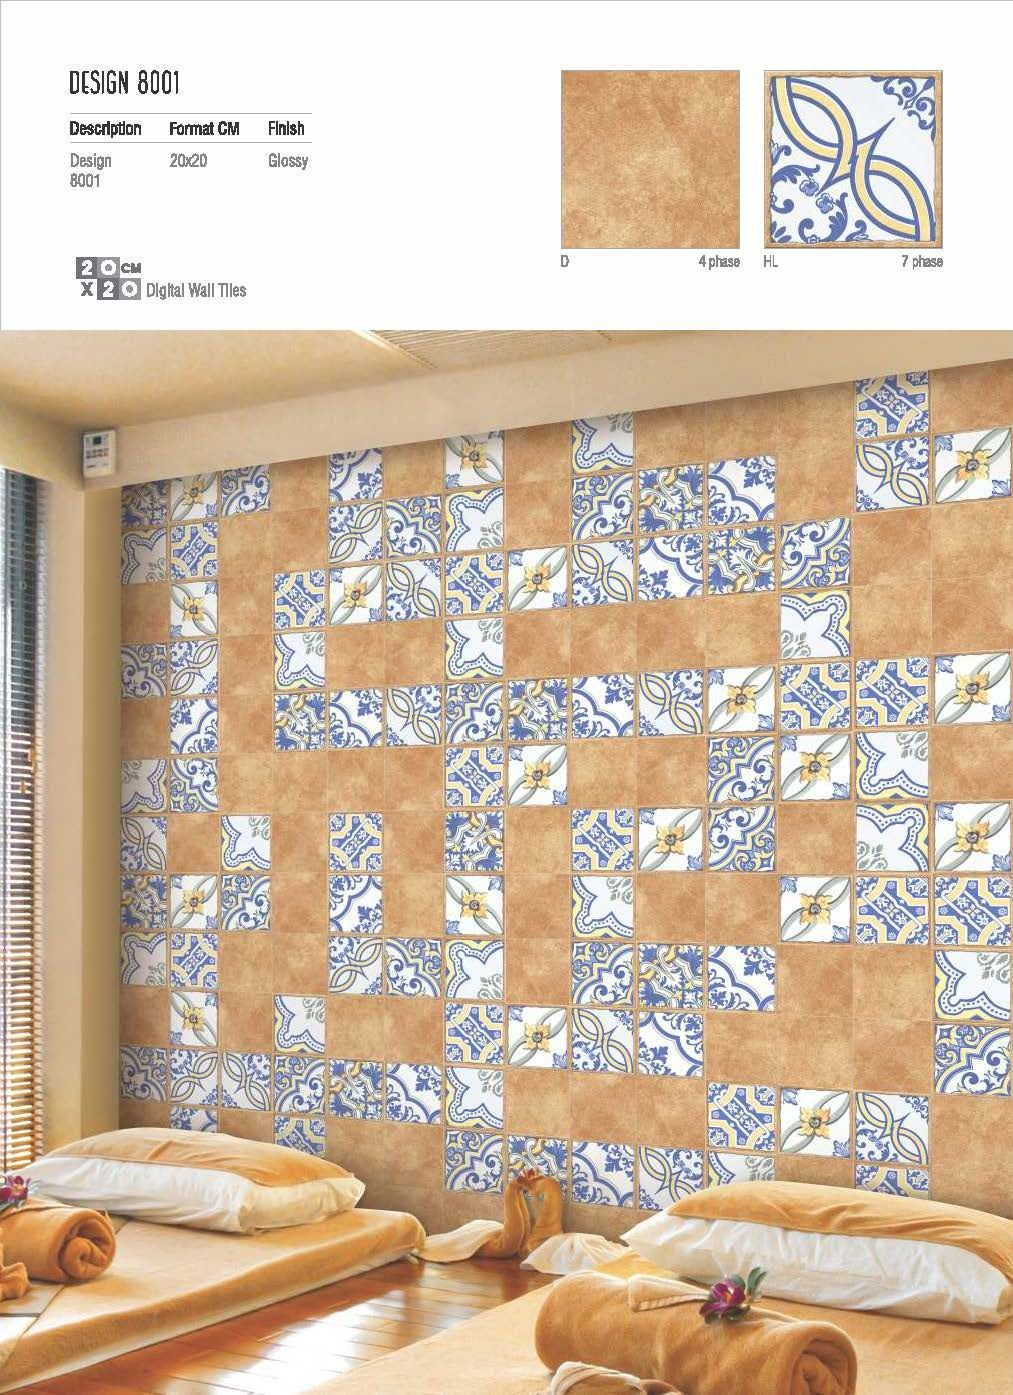 Medium Crop Of International Wholesale Tile